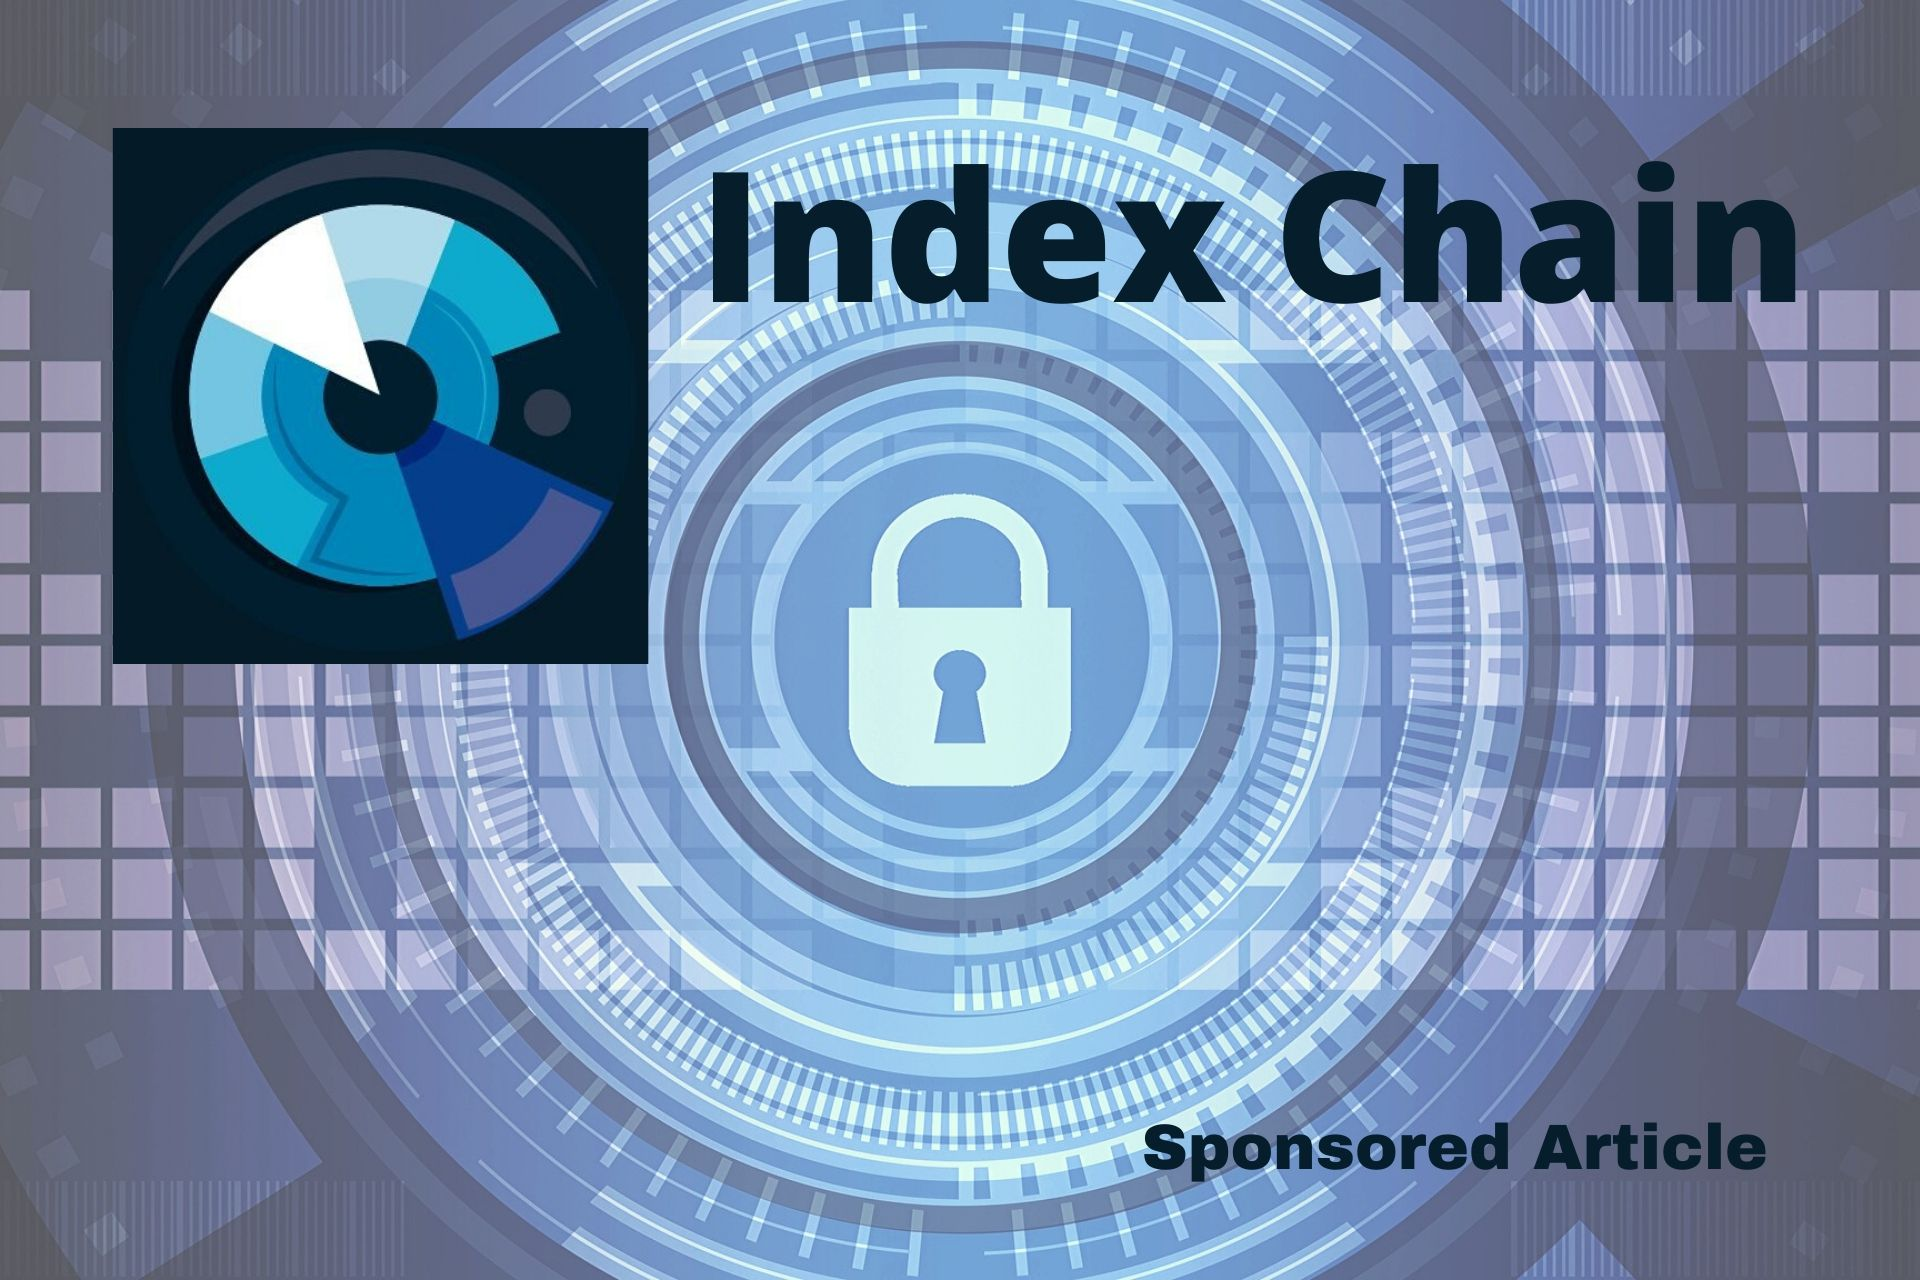 Index Chain